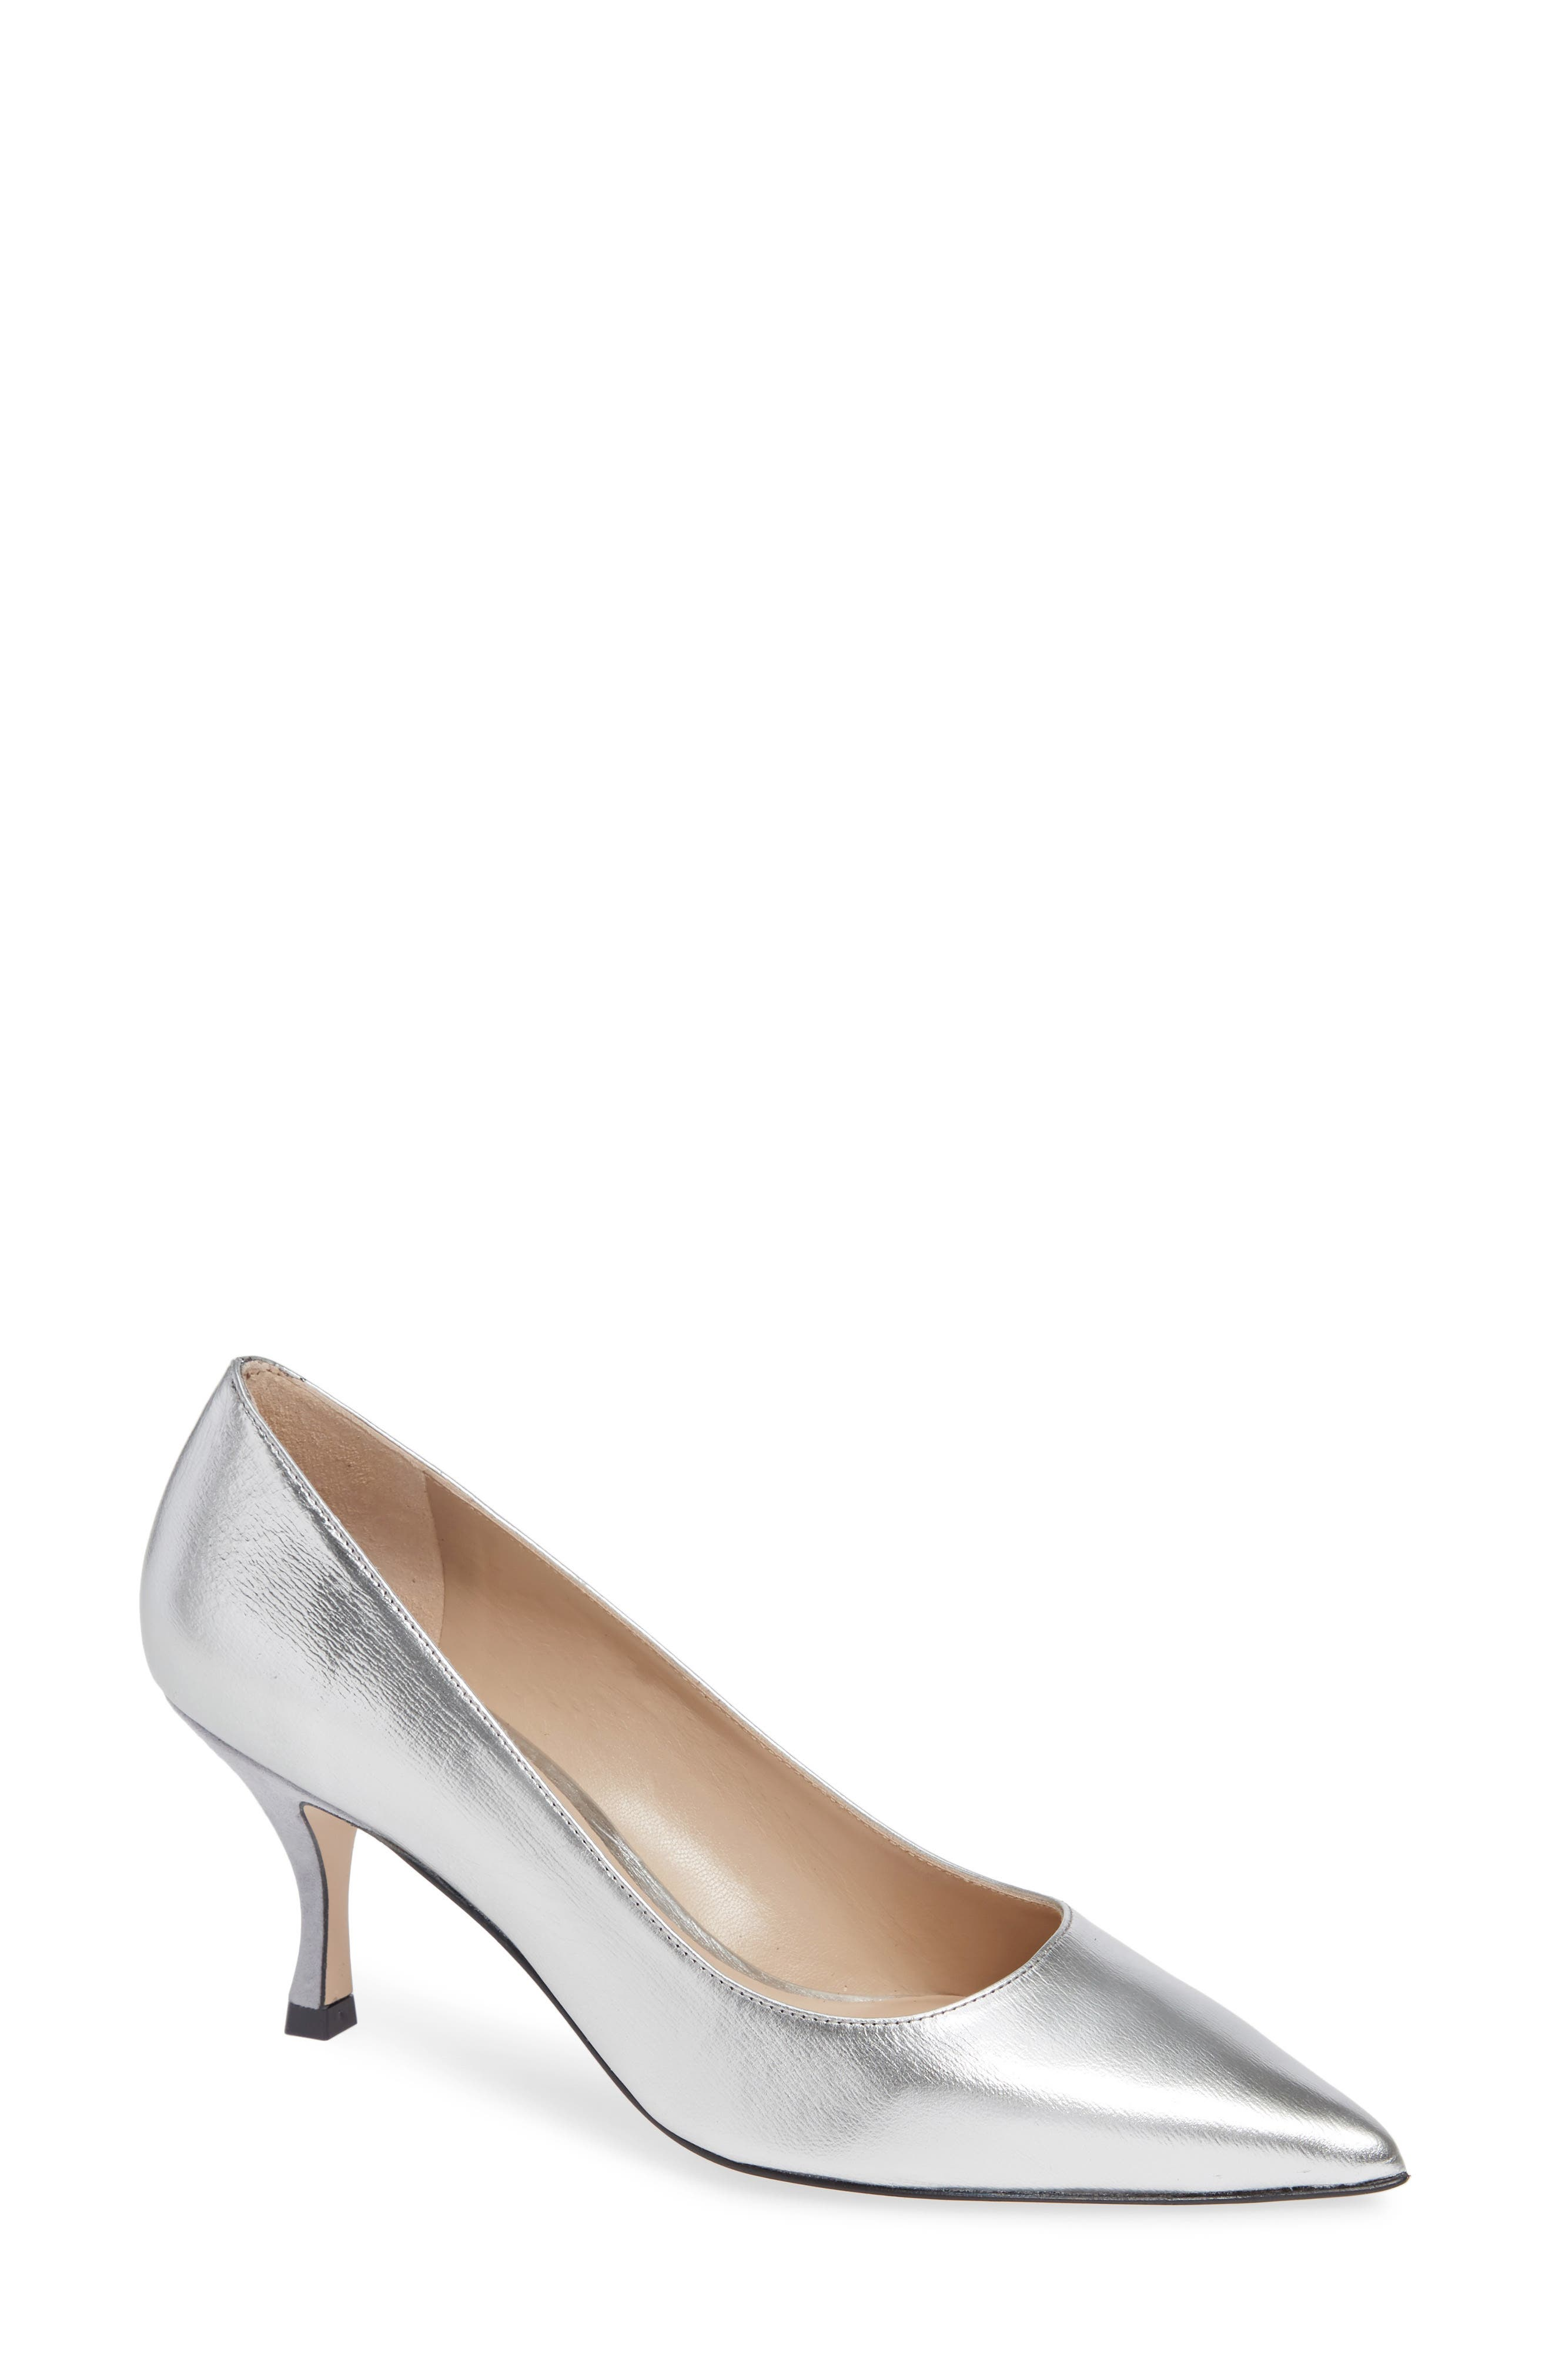 Tippi 70 Pointy Toe Pump,                         Main,                         color, SILVER VENICE